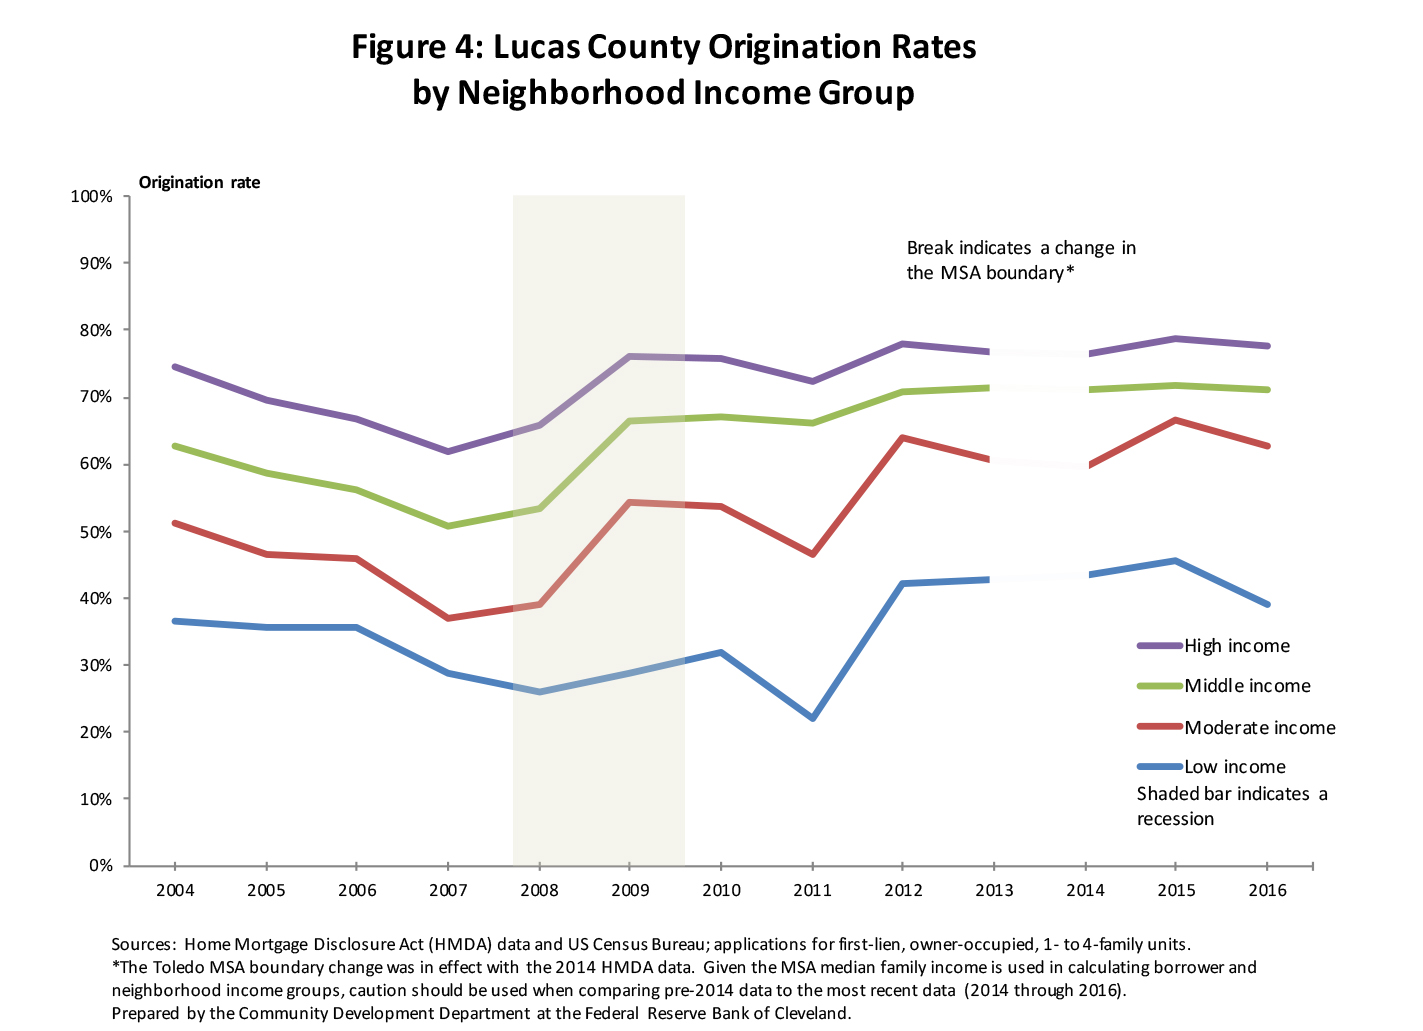 Figure 4: Lucas County Origination Rates by Neighborhood Income Group